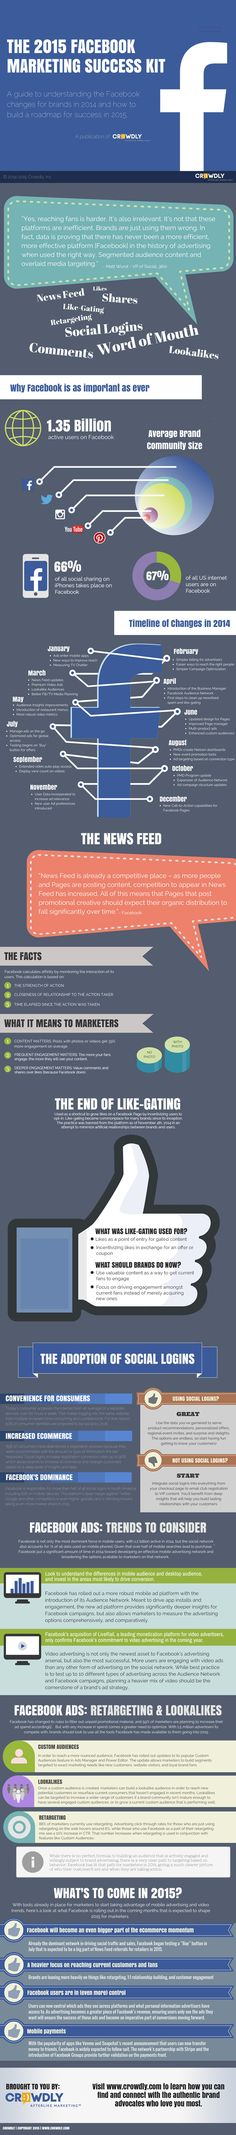 The 2015 #FacebookMarketing Success Kit - #infographic #socialmedia